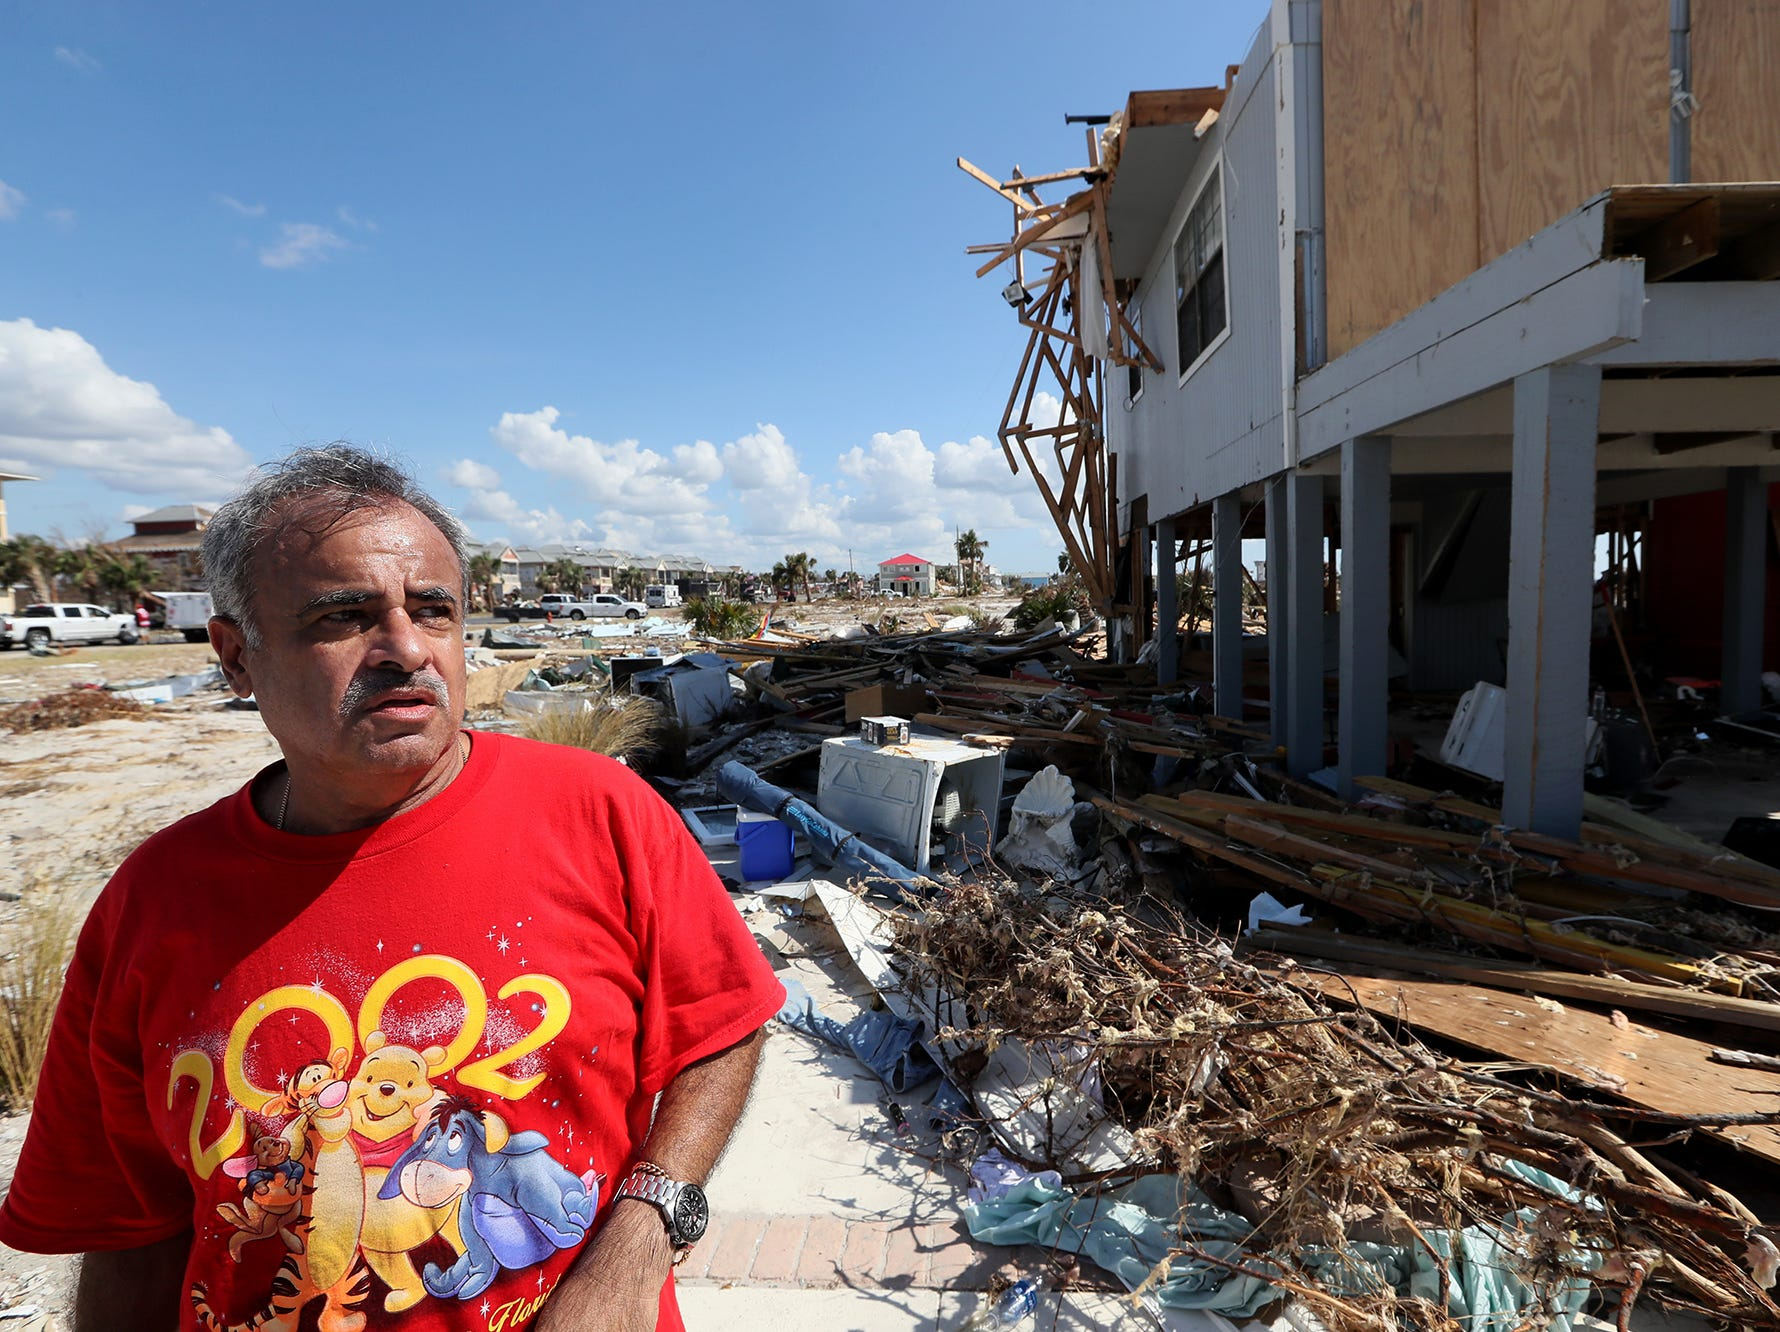 Jaques Sebastiao stands outside of his demolished Mexico Beach home on Wednesday, Oct. 17, 2018, one week after Hurricane Michael ripped through the coastal Florida town. Sebastiao moved in to the home fulltime with his with wife Bela in August, just two months before the storm hit.